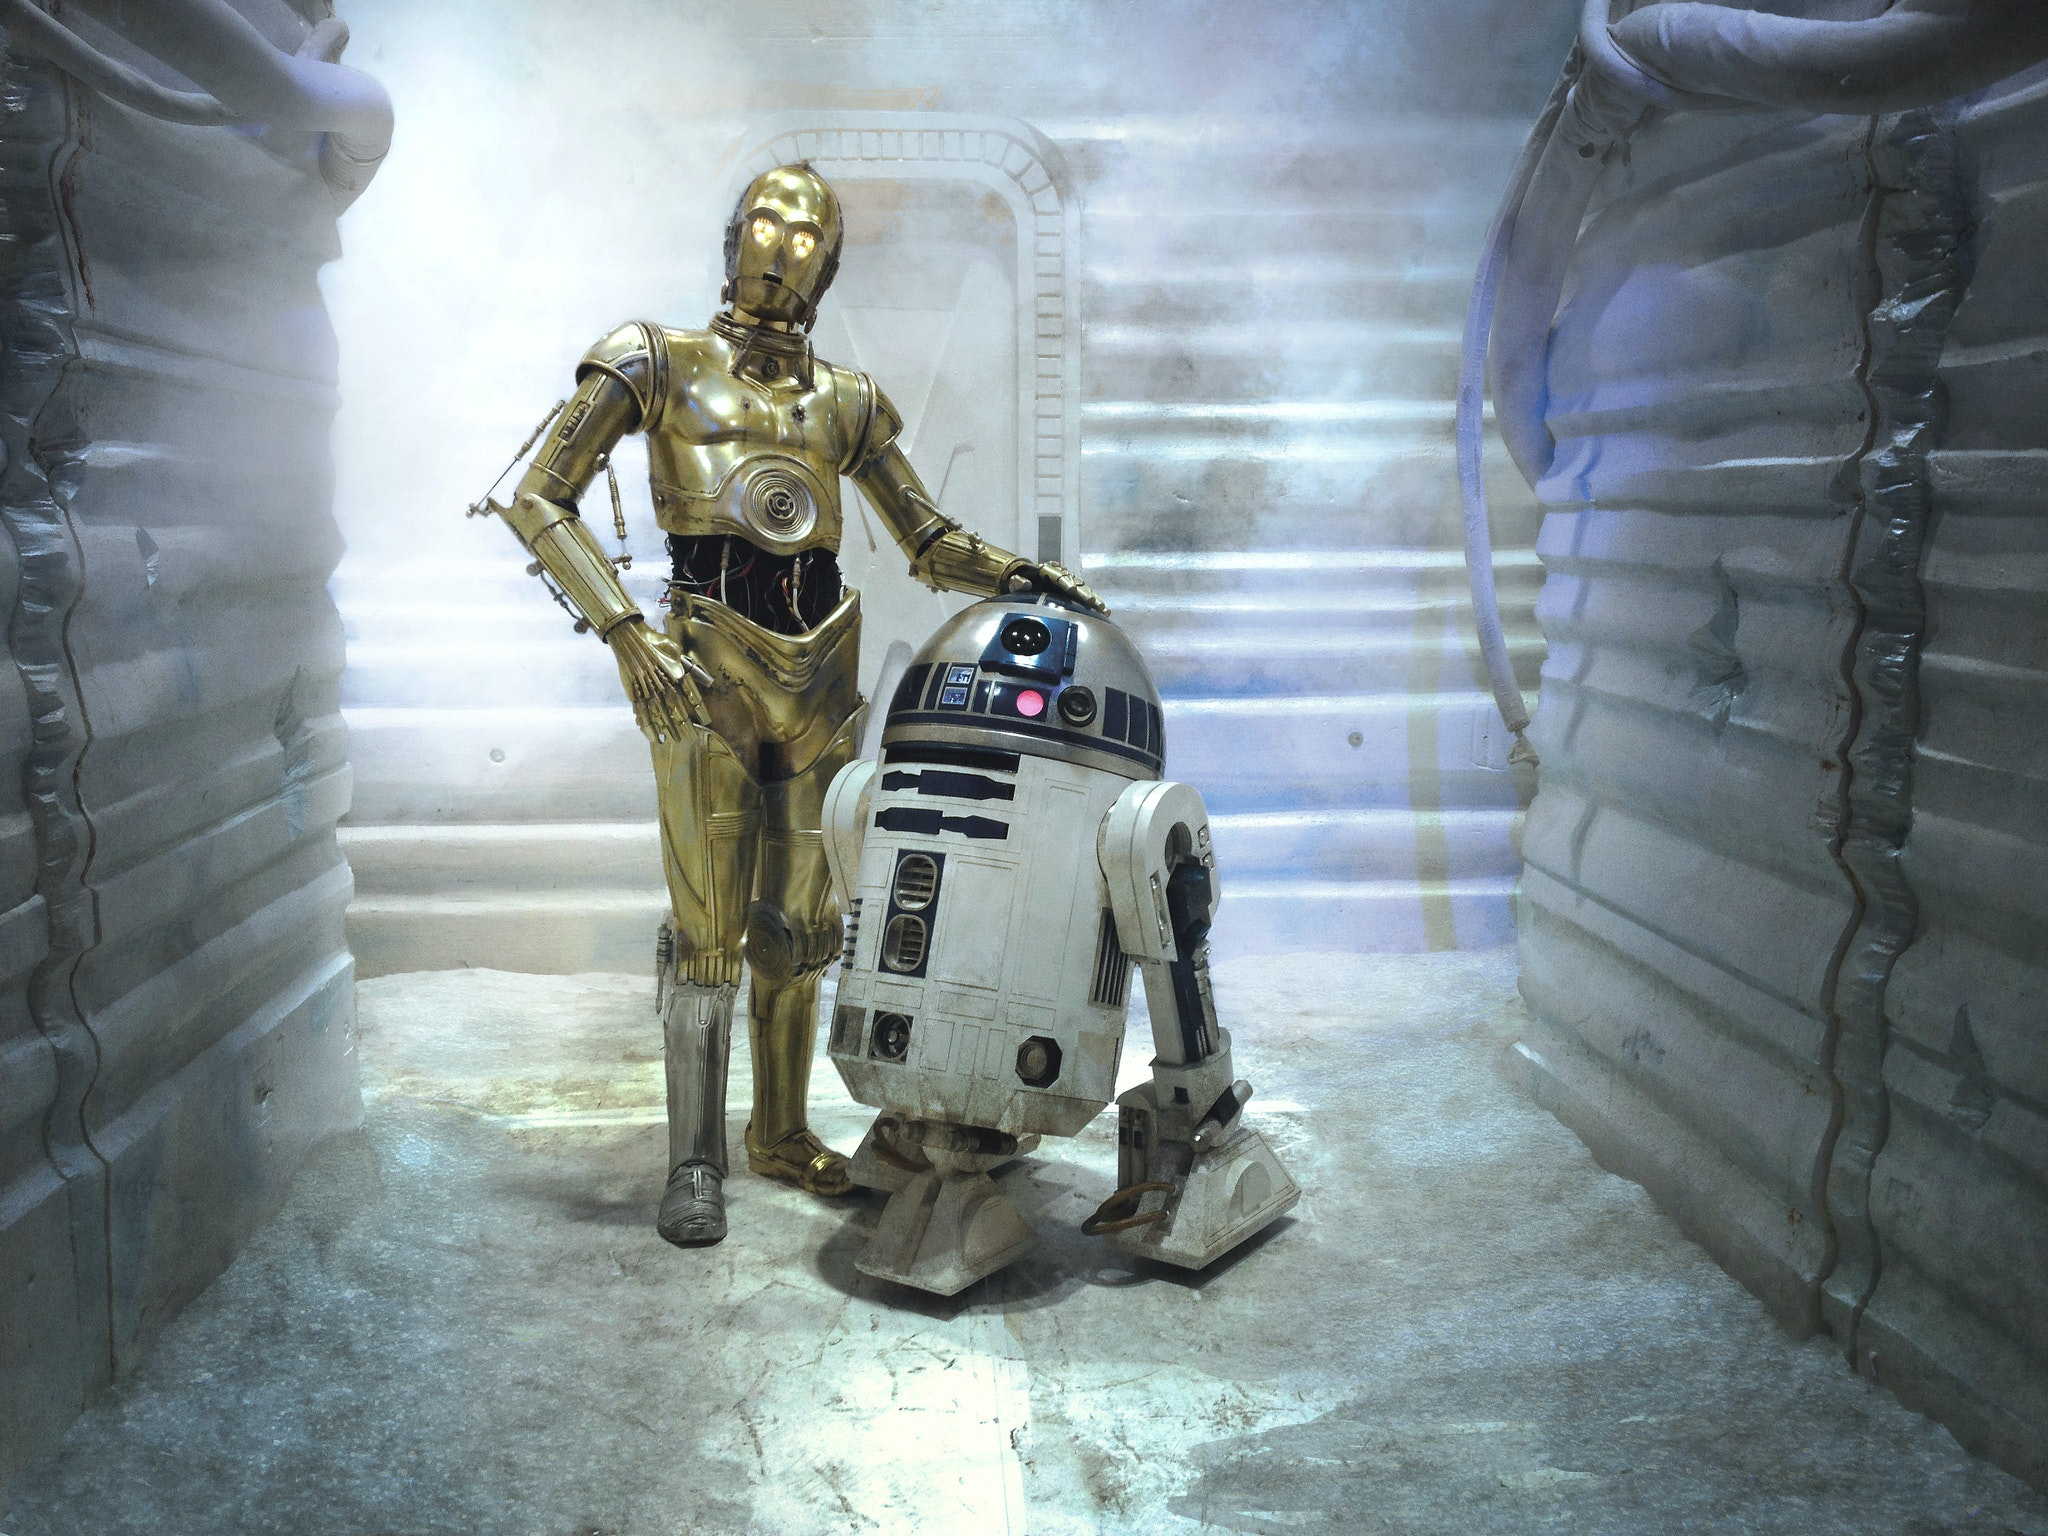 How long until we can build R2-D2 and C-3PO?